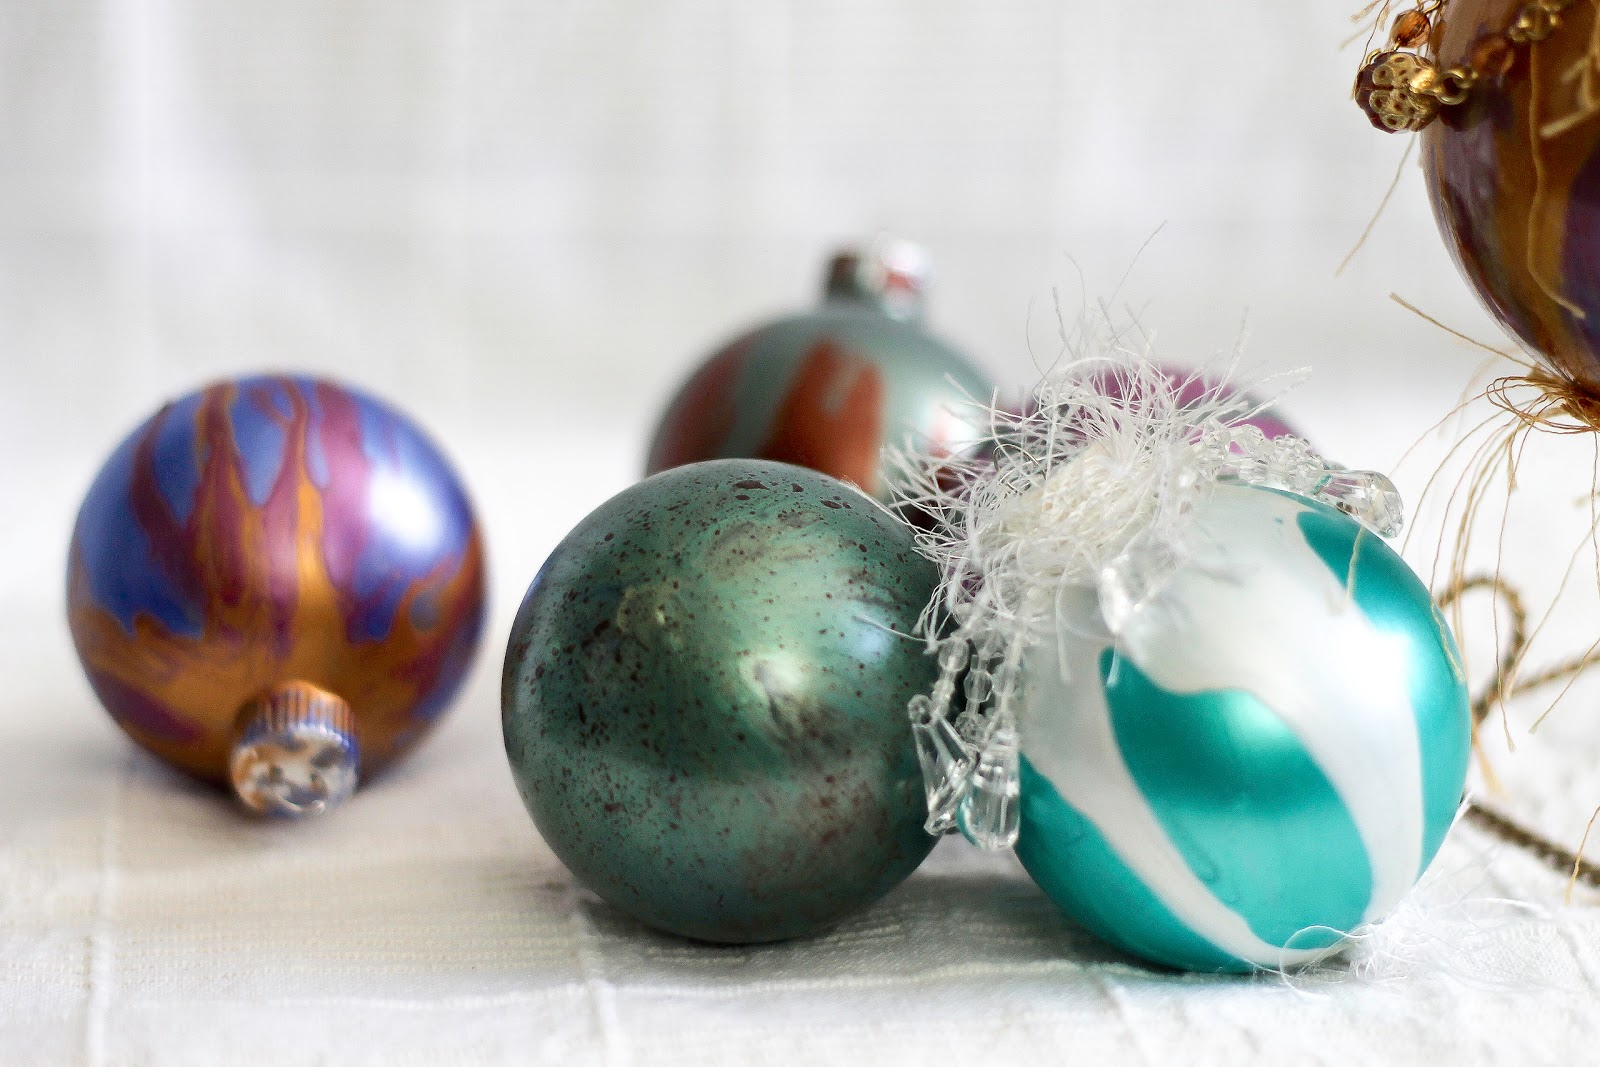 painting and decorating glass christmas bulbs - Glass Christmas Bulbs For Decorating